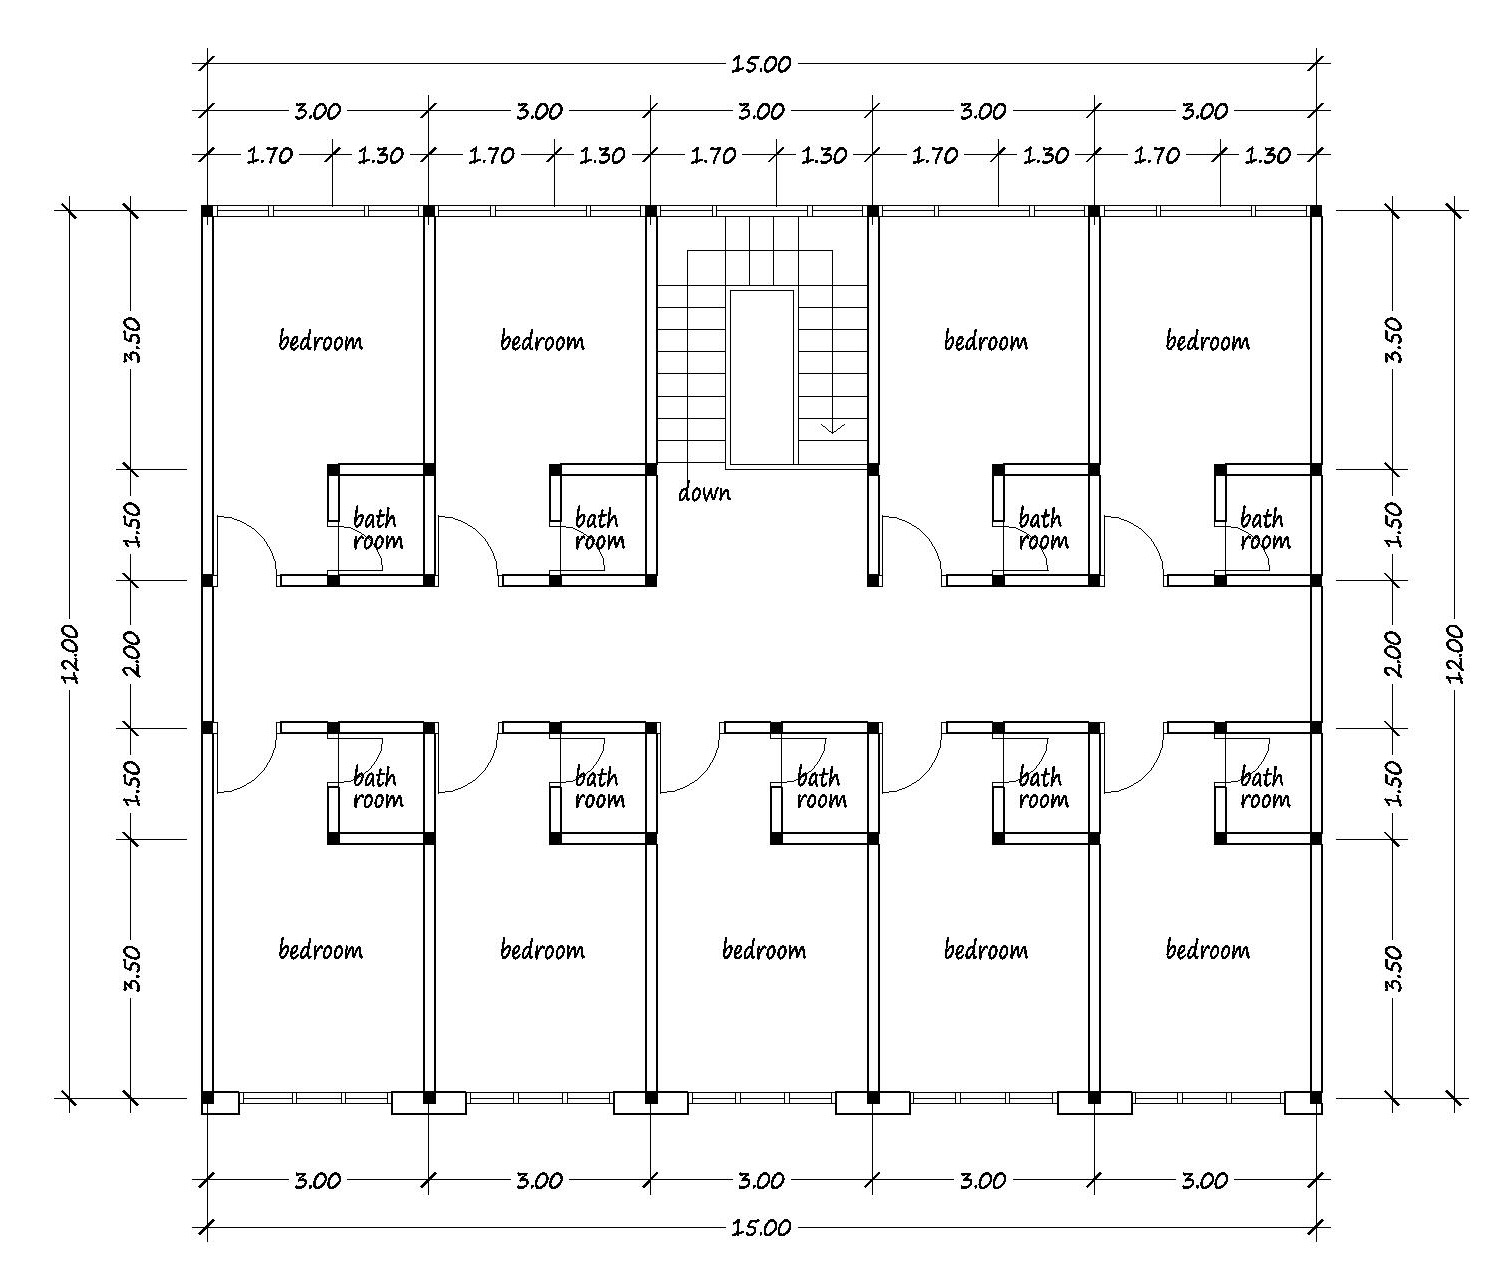 House plans for you plans image design and about house House plans and designs